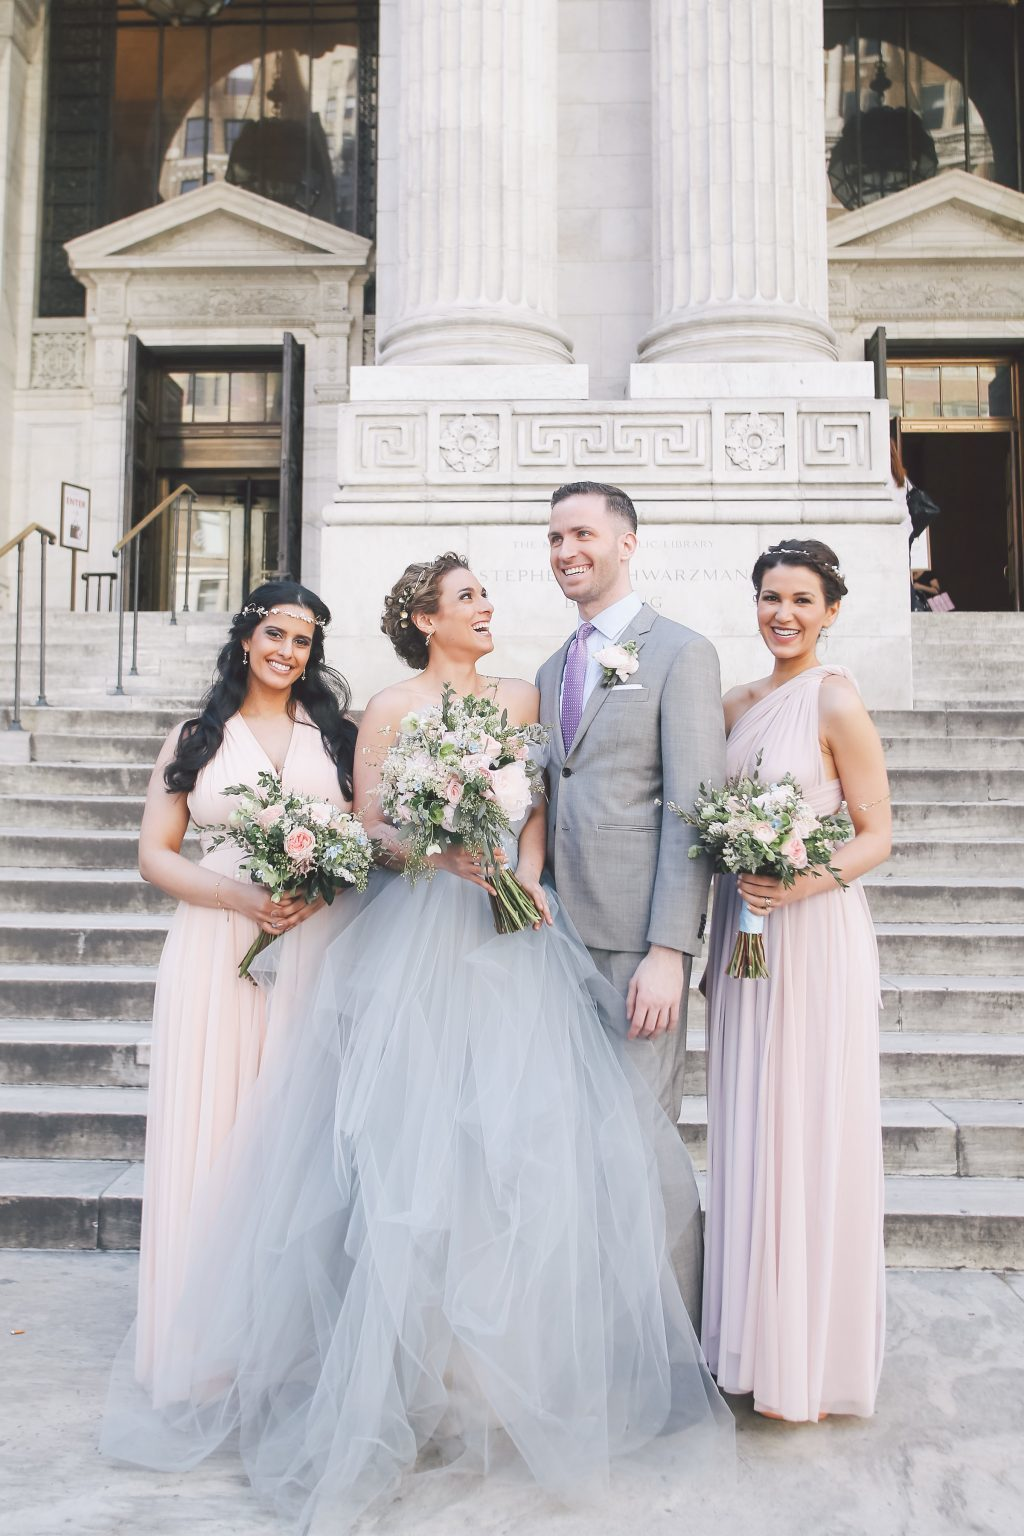 New York Public Library wedding inspiration featured on Style Me Pretty